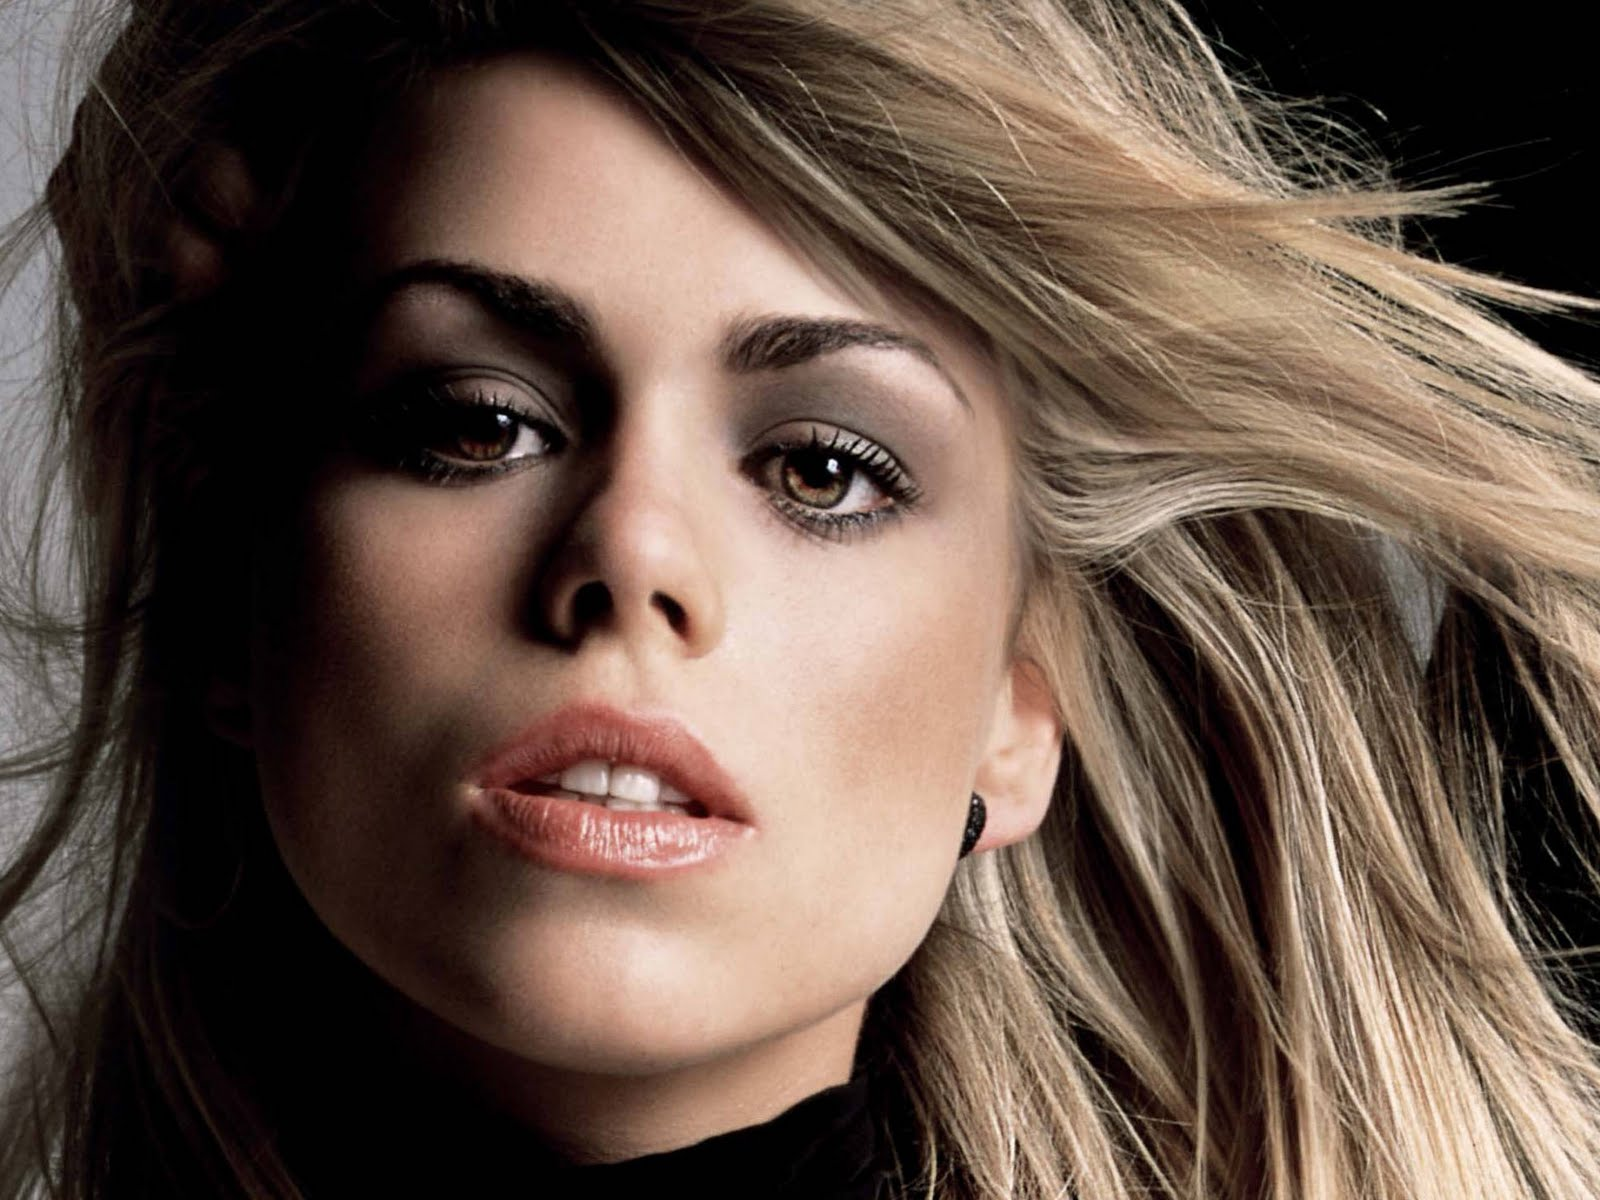 Hot Billie Piper  Girls Pictures  Top Models  Hot -8801